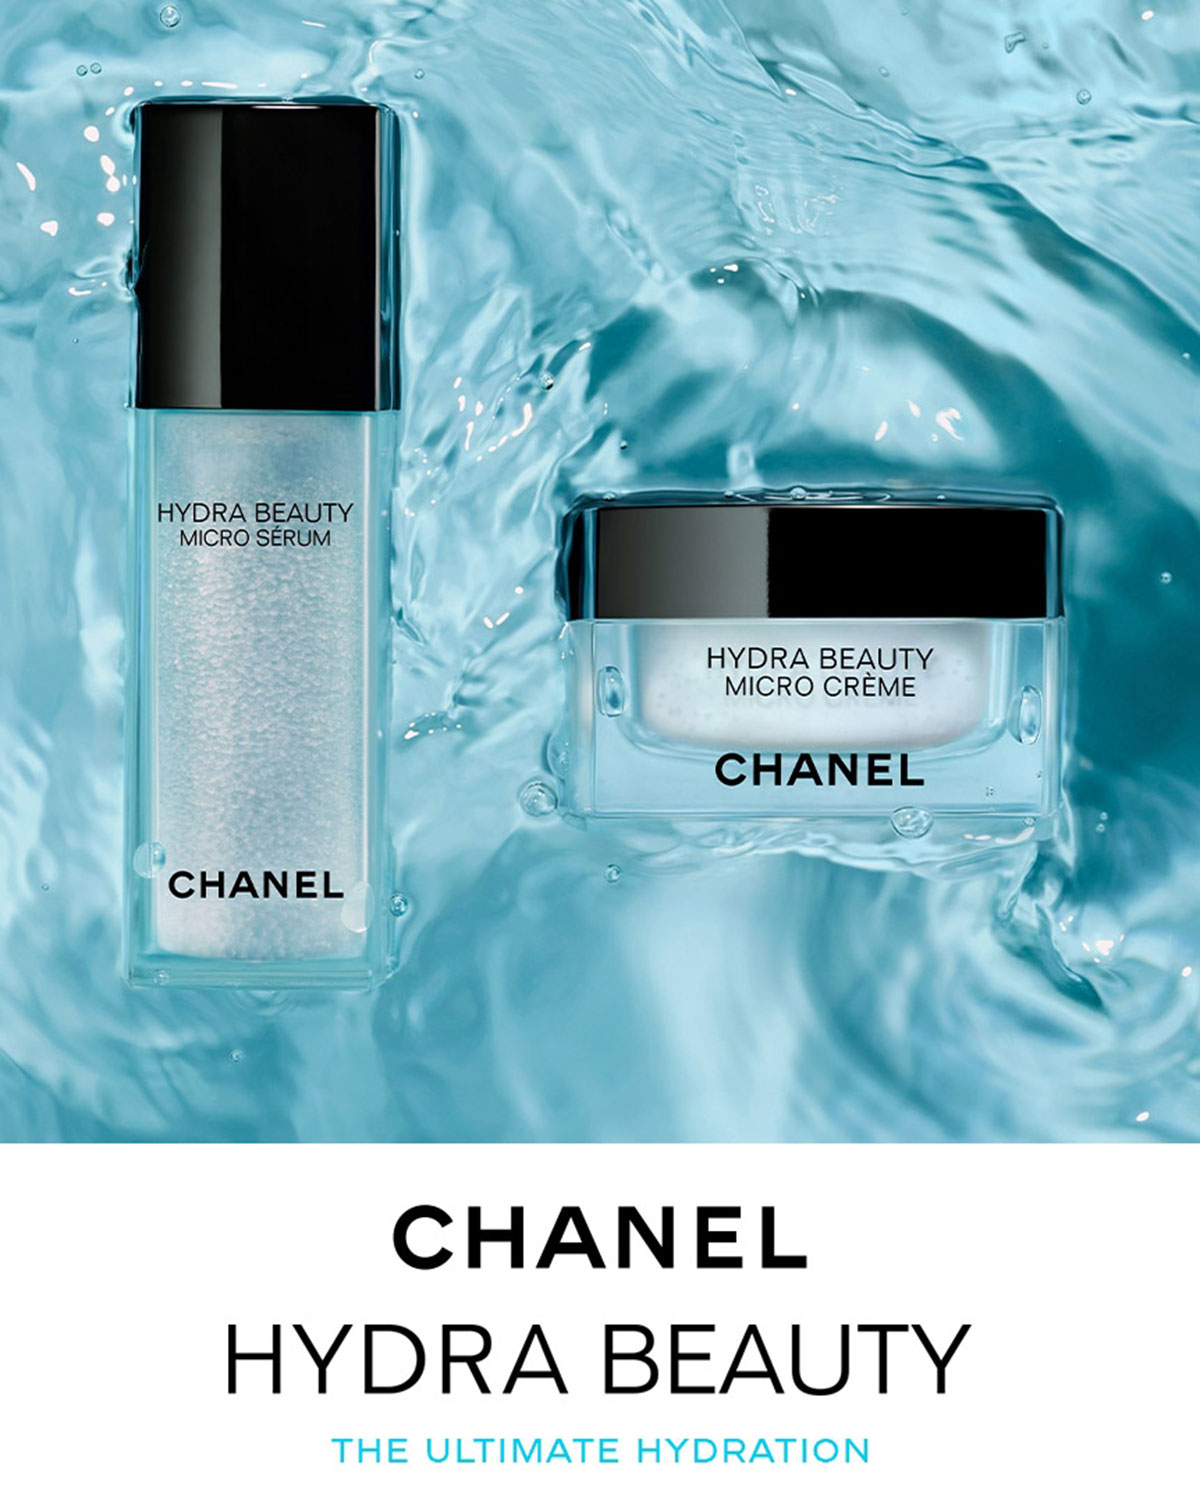 Chanel B Hydra Beauty Micro Crème B Br Fortifying Replenishing Hydration Neiman Marcus